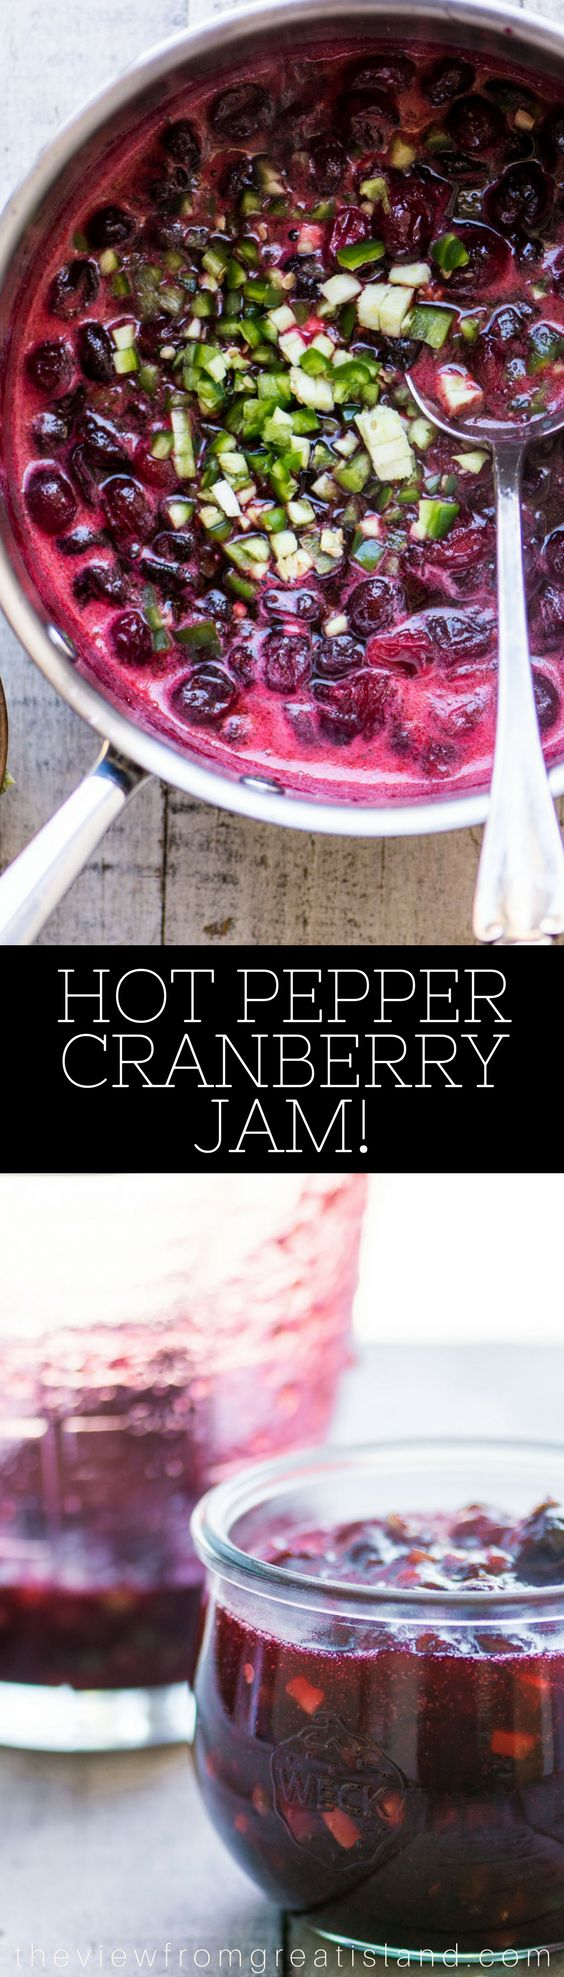 Hot Pepper Cranberry Jam | The View from Great Island